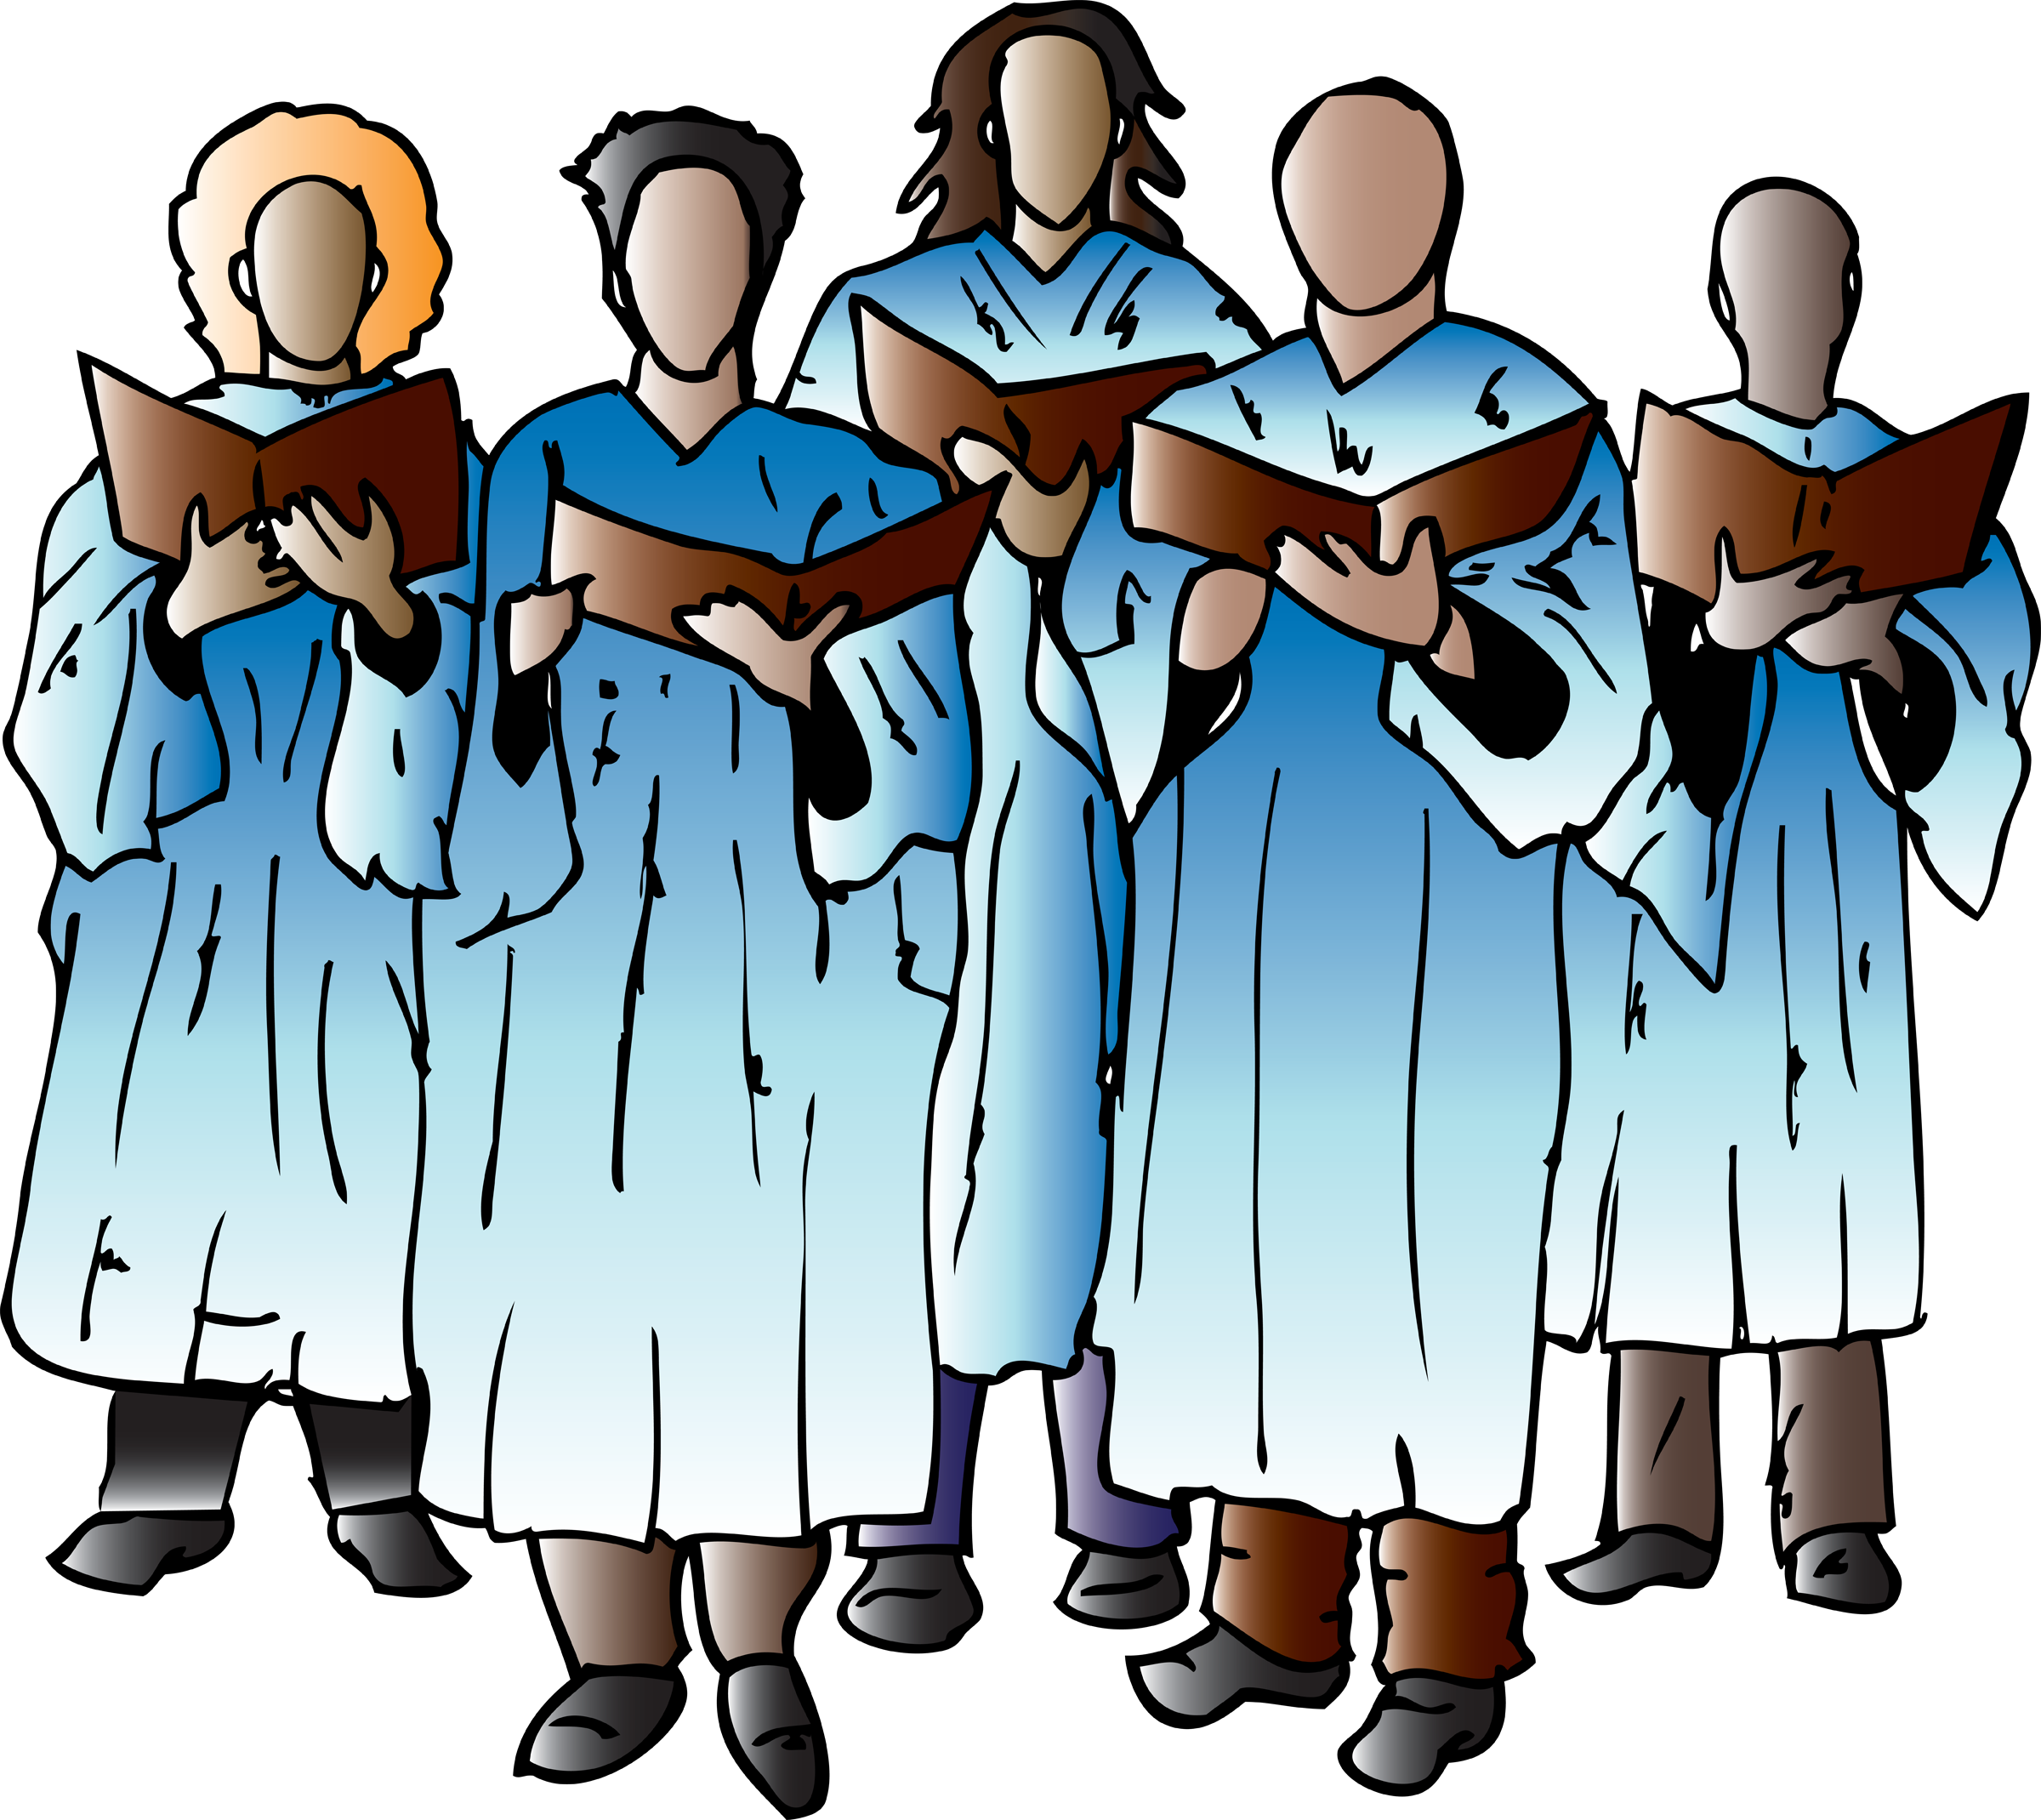 Choir Images | Free download best Choir Images on ClipArtMag com